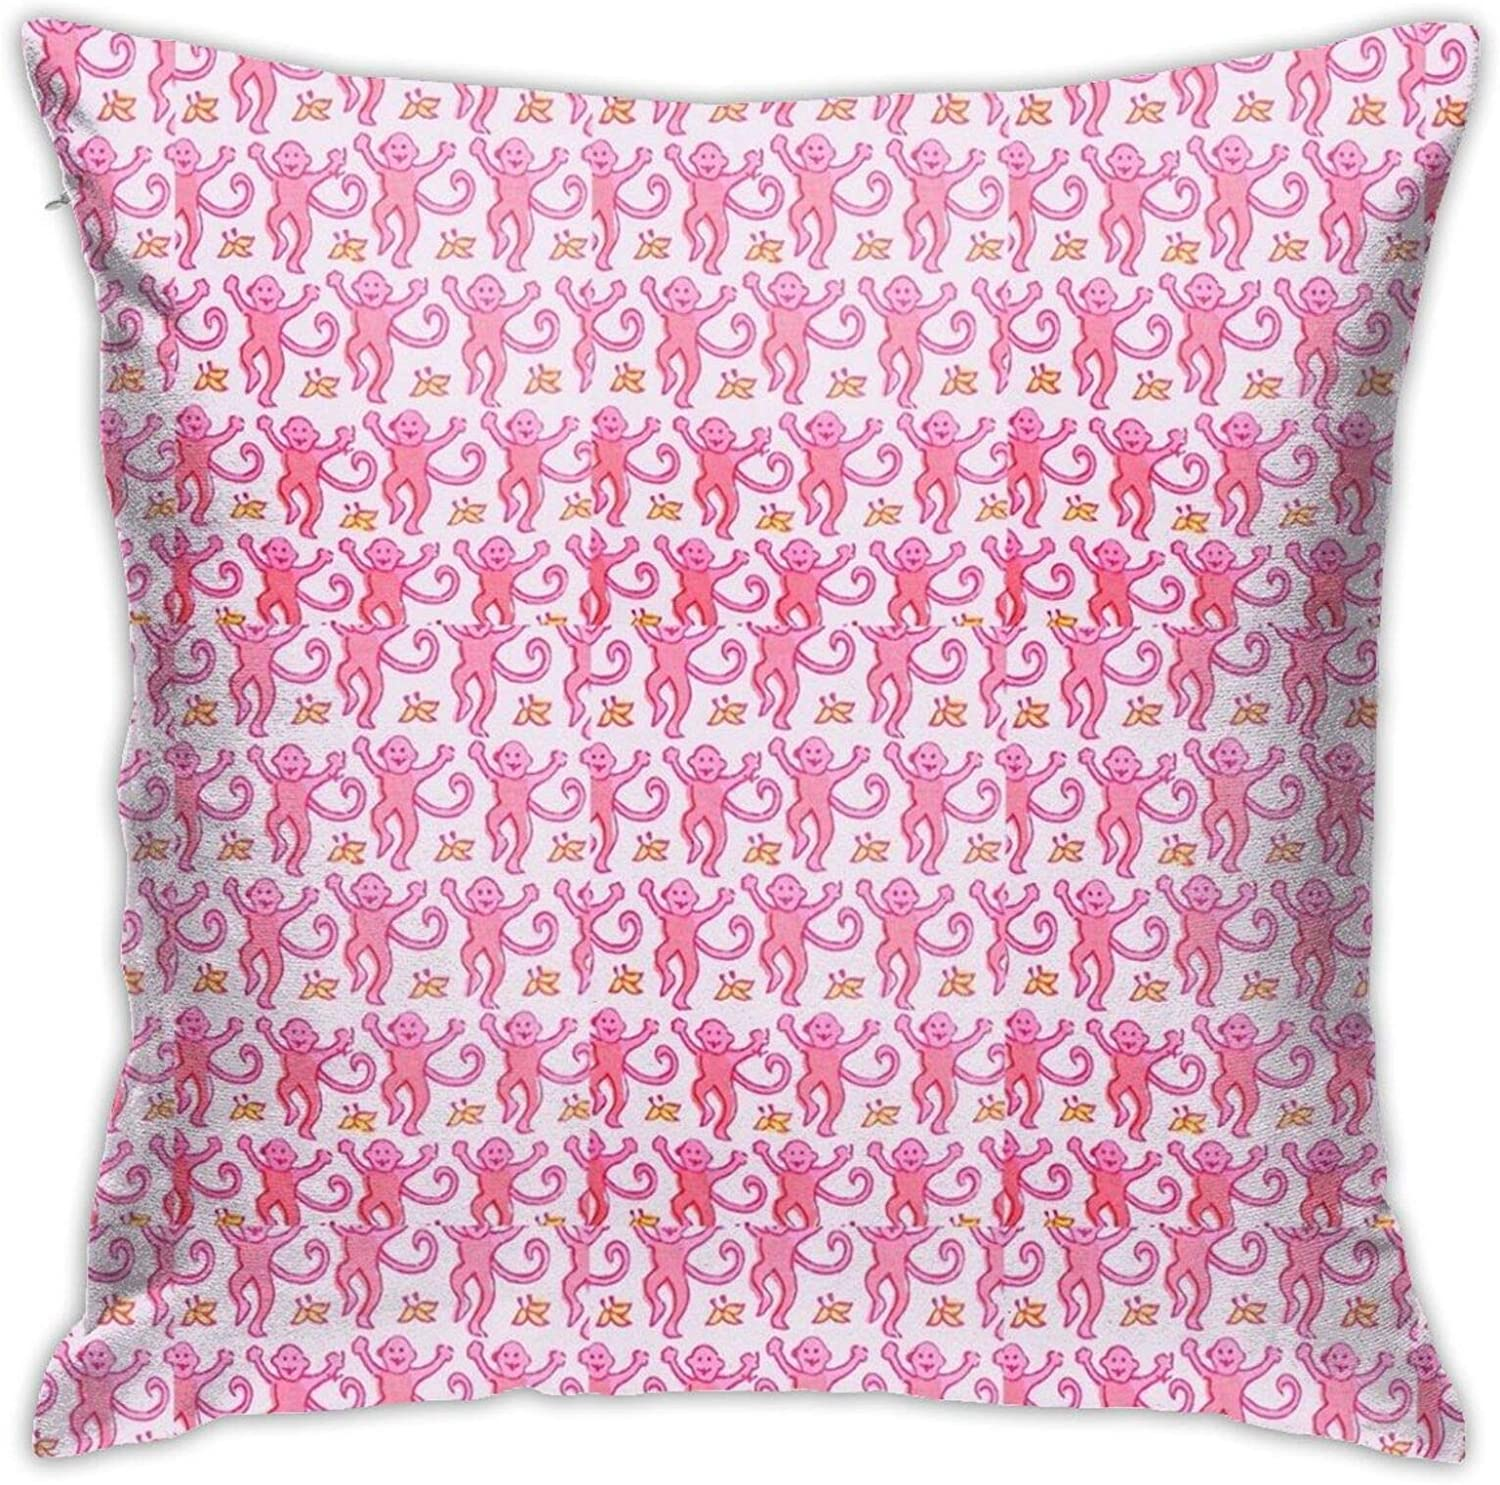 Melinde Pink Roller Rabbit Monkeys Pillow Case Square Soft Pillowcase Throw Pillow Cover Home Decor for Living Room Sofa Car Cushion Cover 18